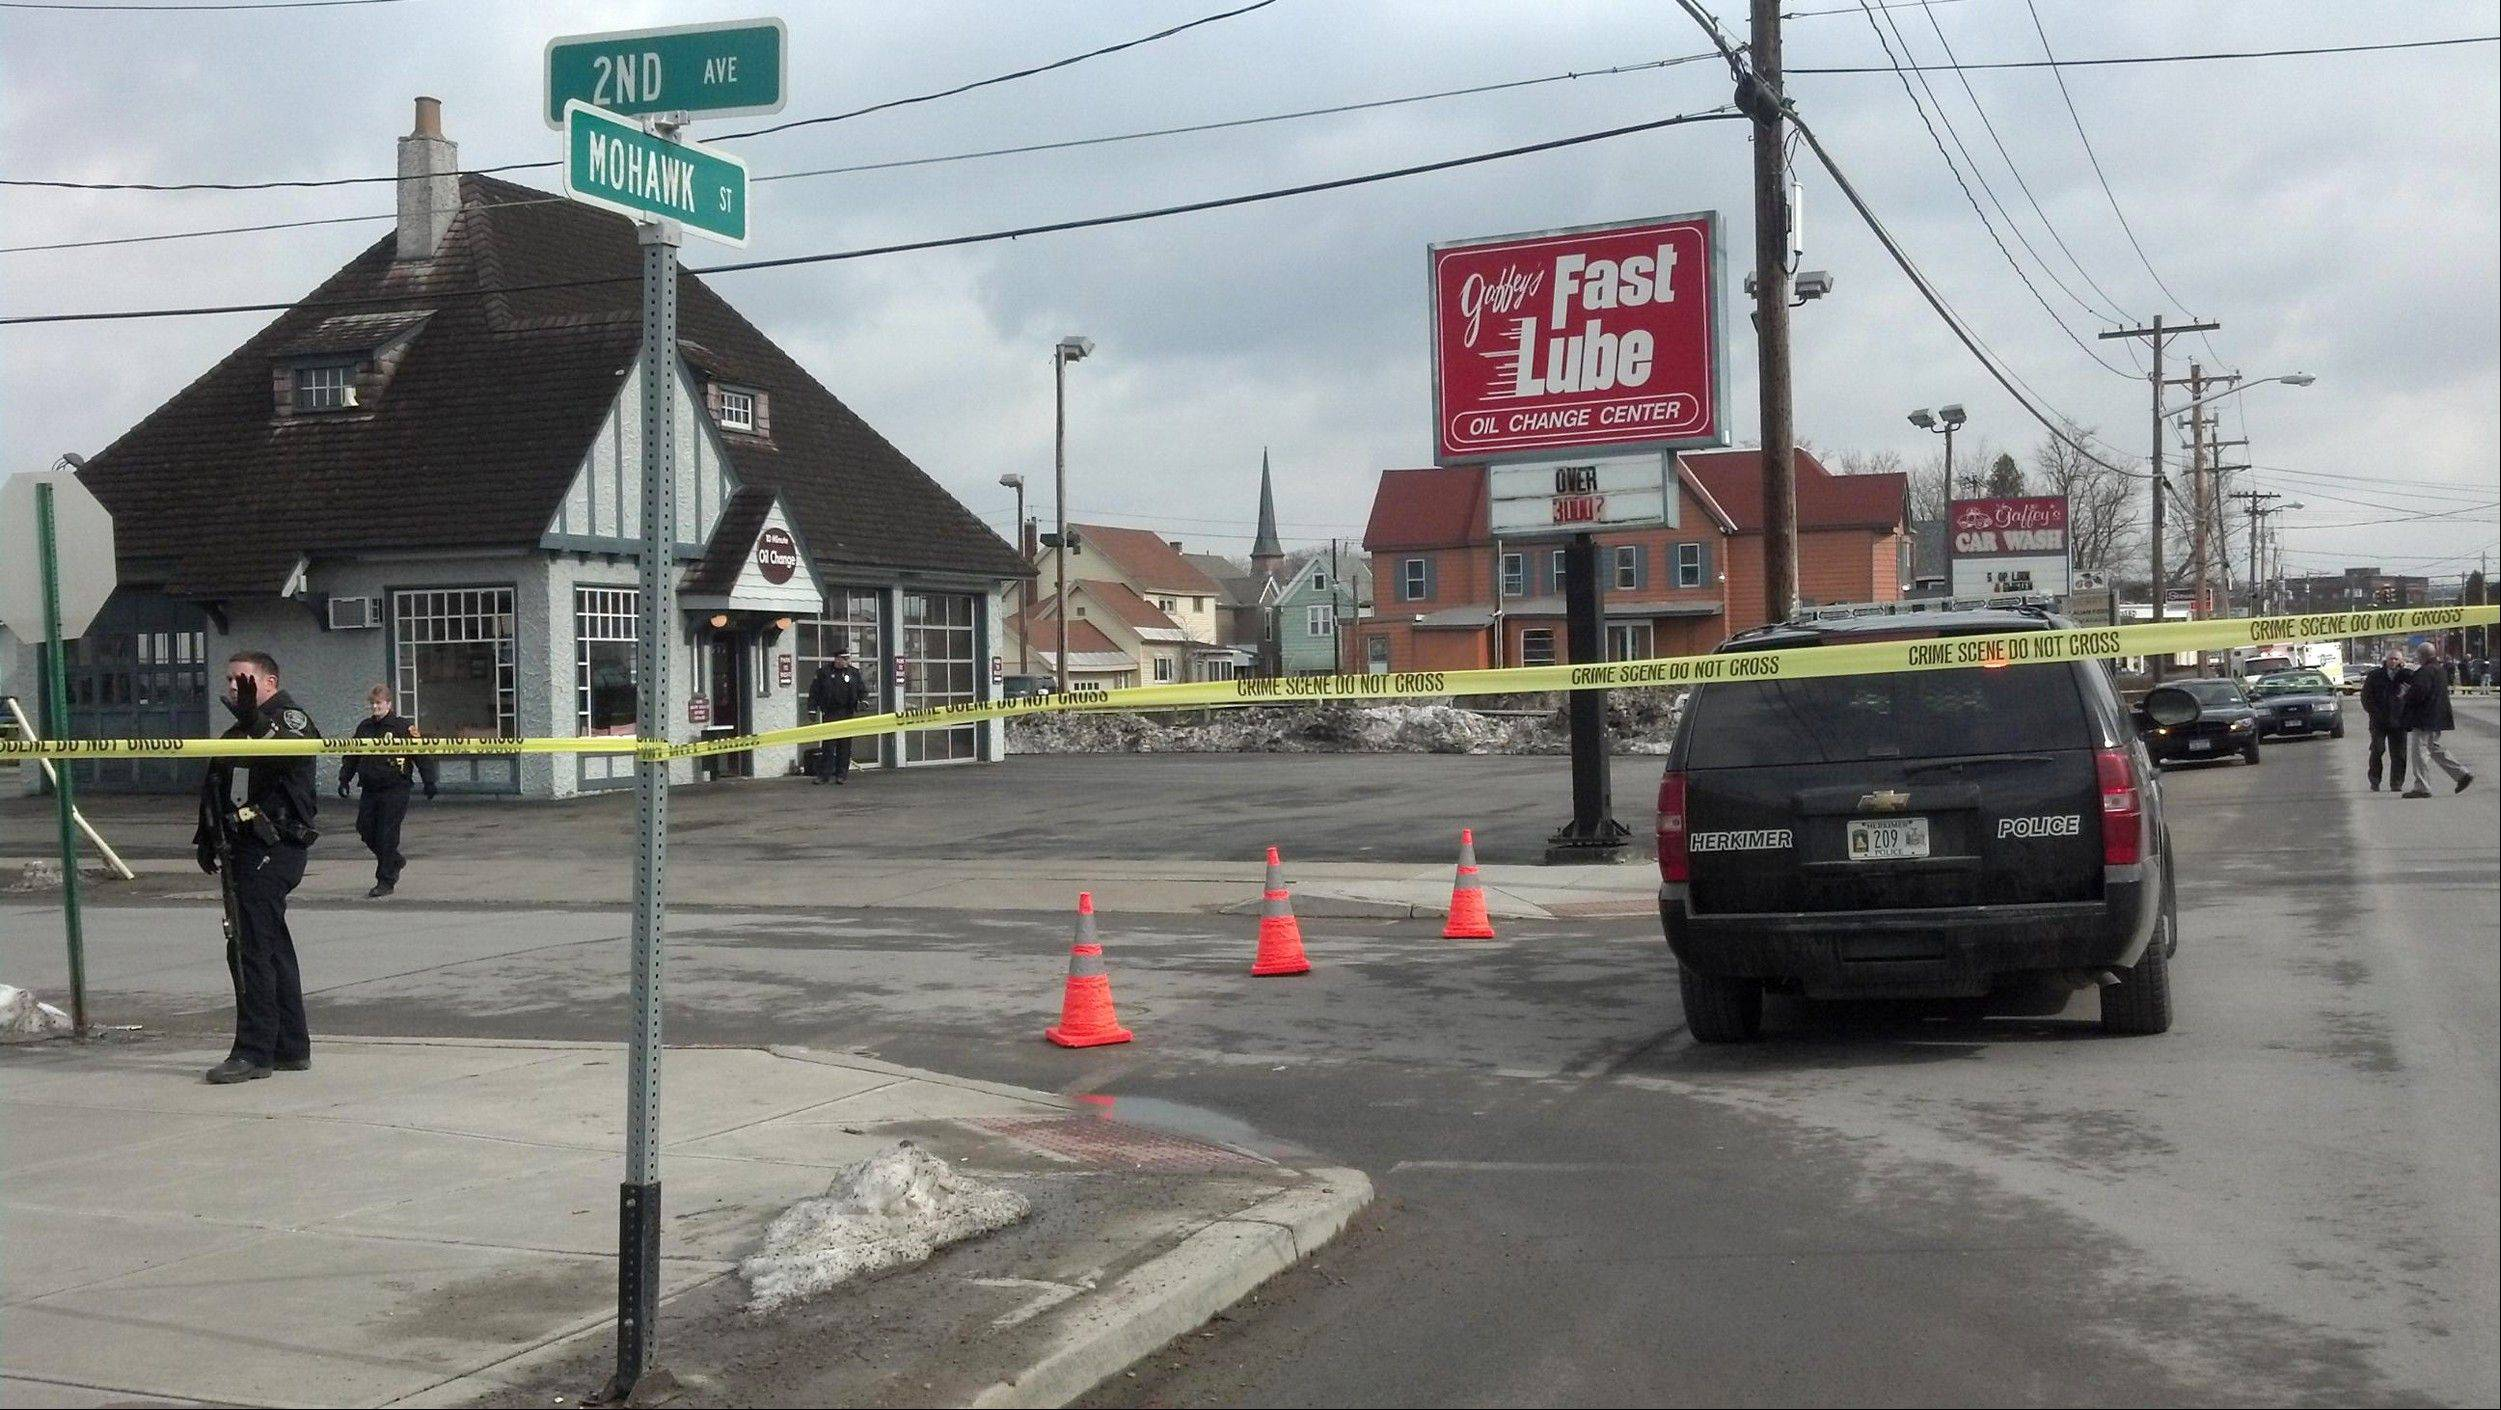 Shootings at two different businesses in the village of Herkimer, N.Y., left four people dead and at least two wounded, according to police, Wednesday, March 13, 2013.